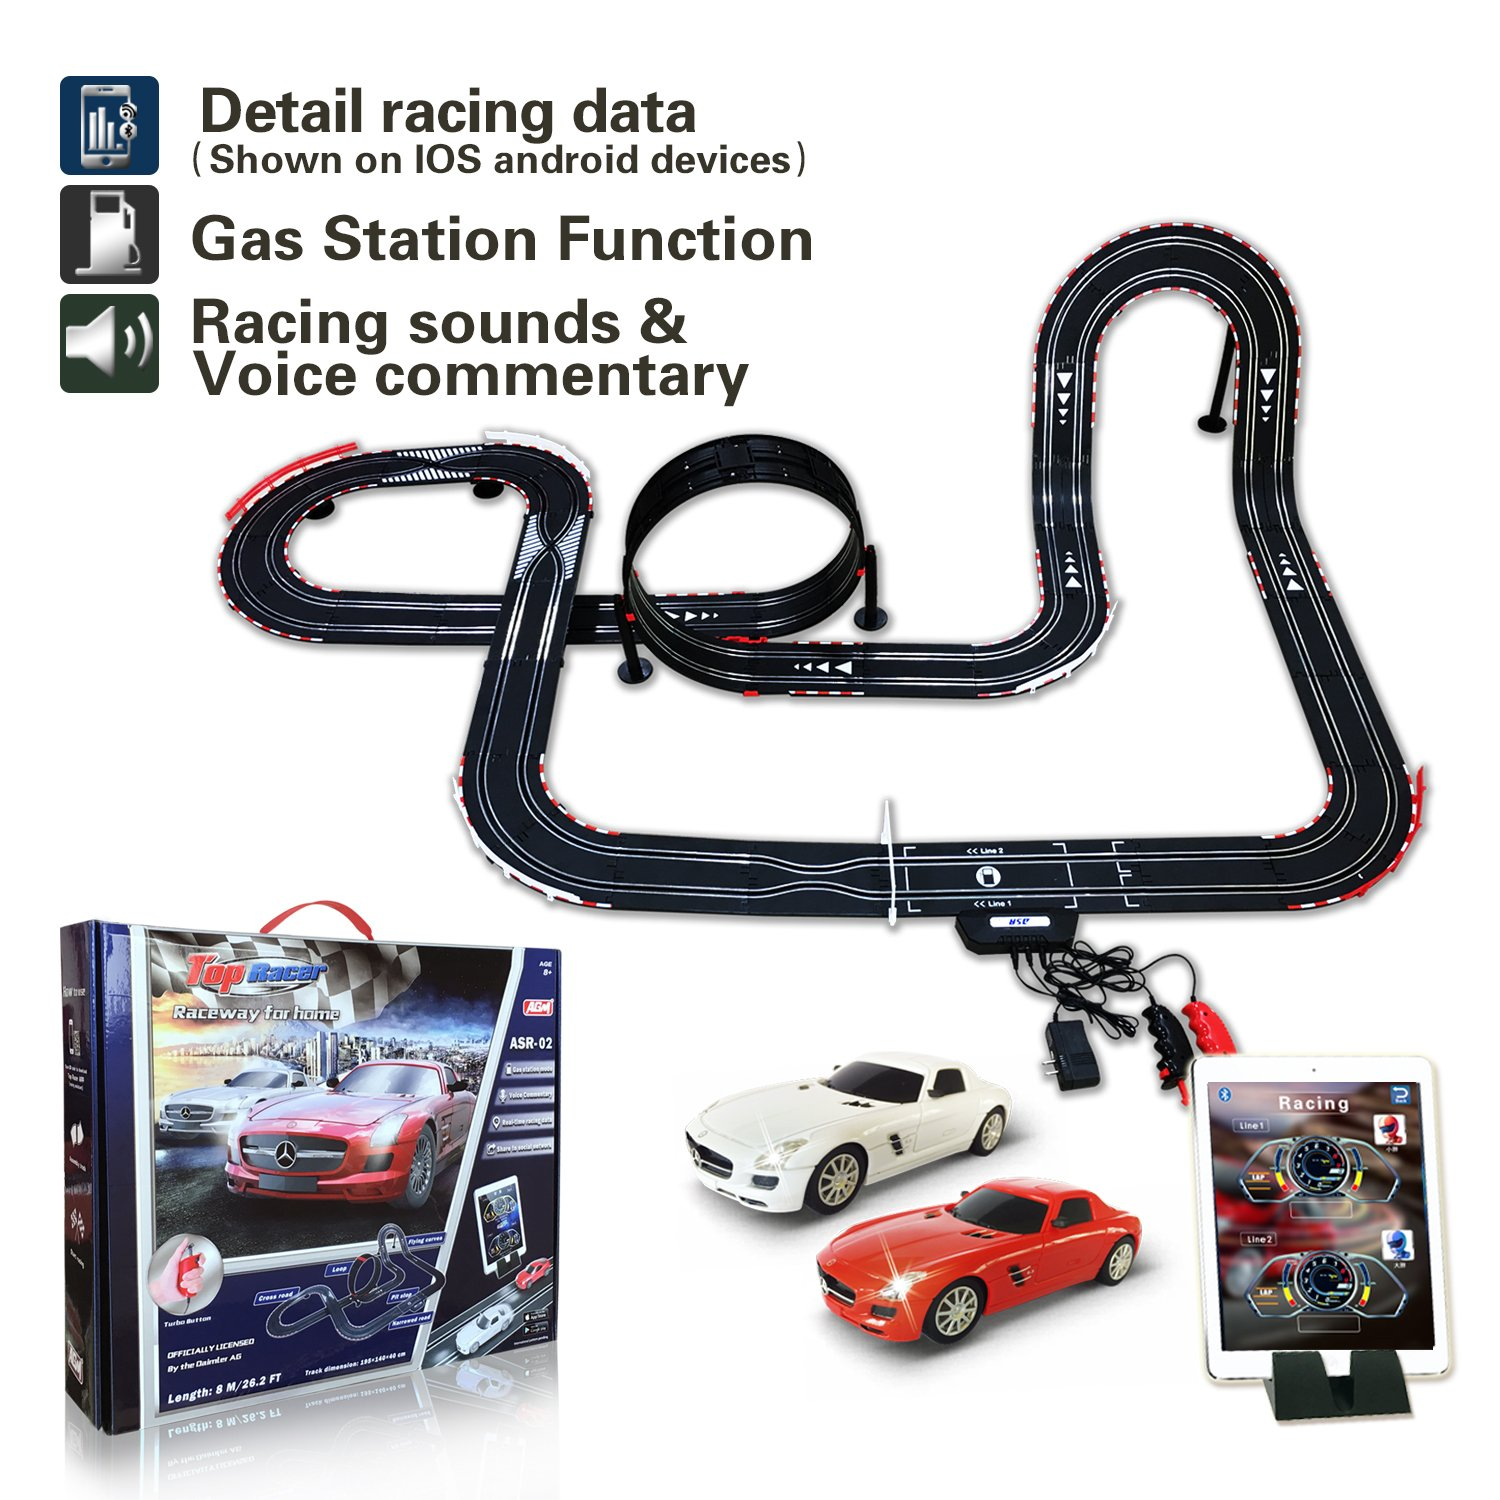 Amazon.com: Slot Cars, Race Tracks & Accessories: Toys & Games ...